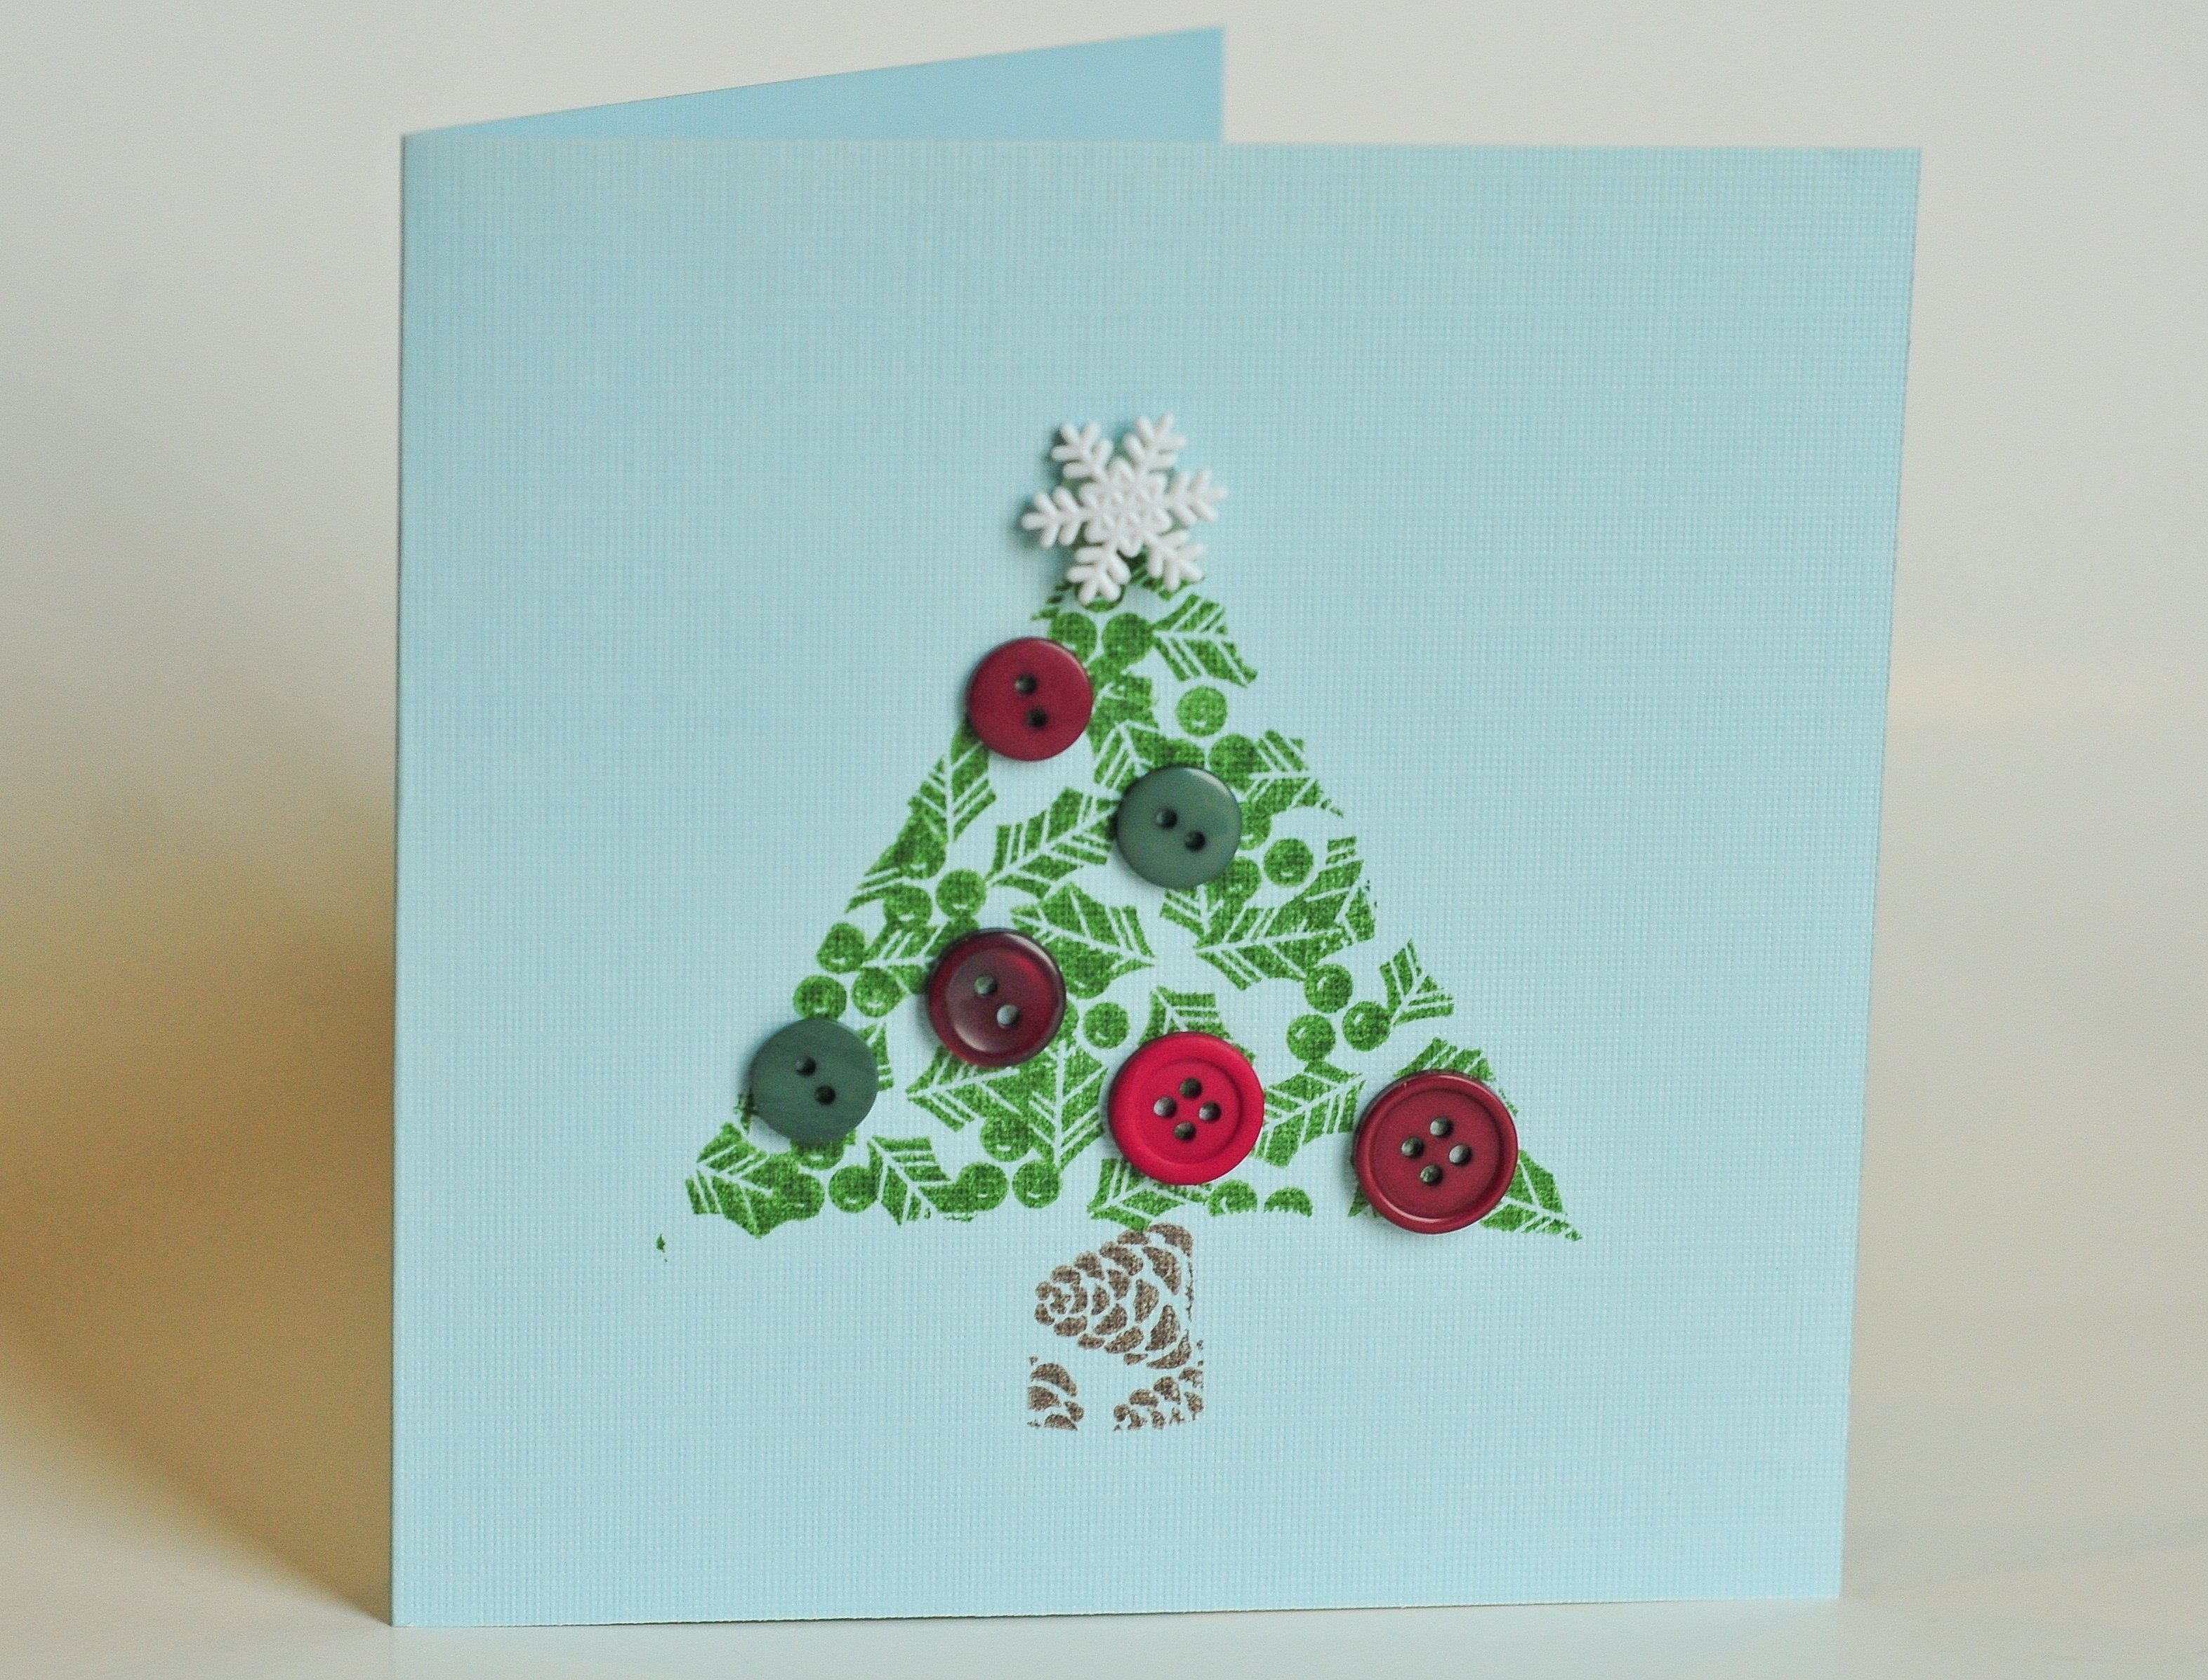 10 Trendy Cute Christmas Card Ideas For Kids christmas cards make ideas children yuyellowpages tierra este 25710 1 2021